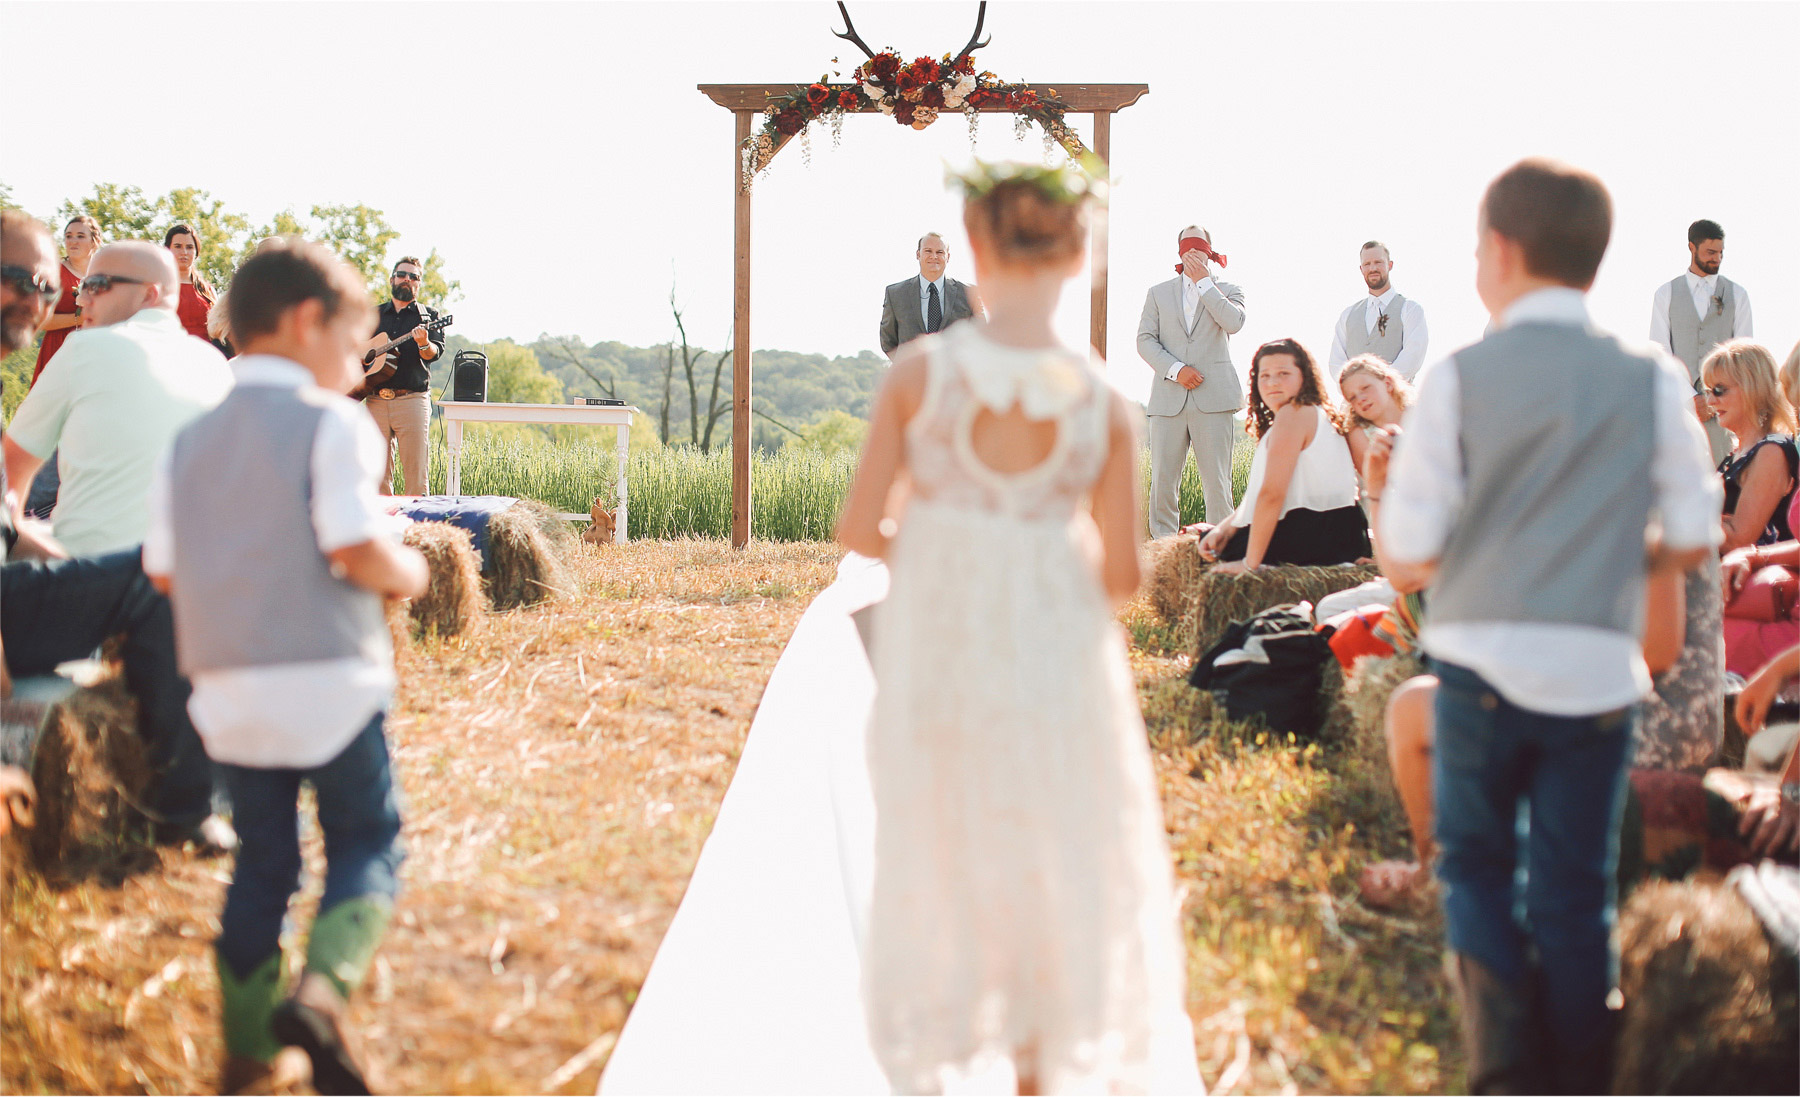 15-South-Haven-Minnesota-Wedding-Photographer-by-Andrew-Vick-Photography-Summer-Tomala-Farm-Ceremony-Groom-Blidefold-Flower-Girl-Ring-Bearer-Aisle-Hay-Bale-Vintage-Renee-and-Bobb.jpg